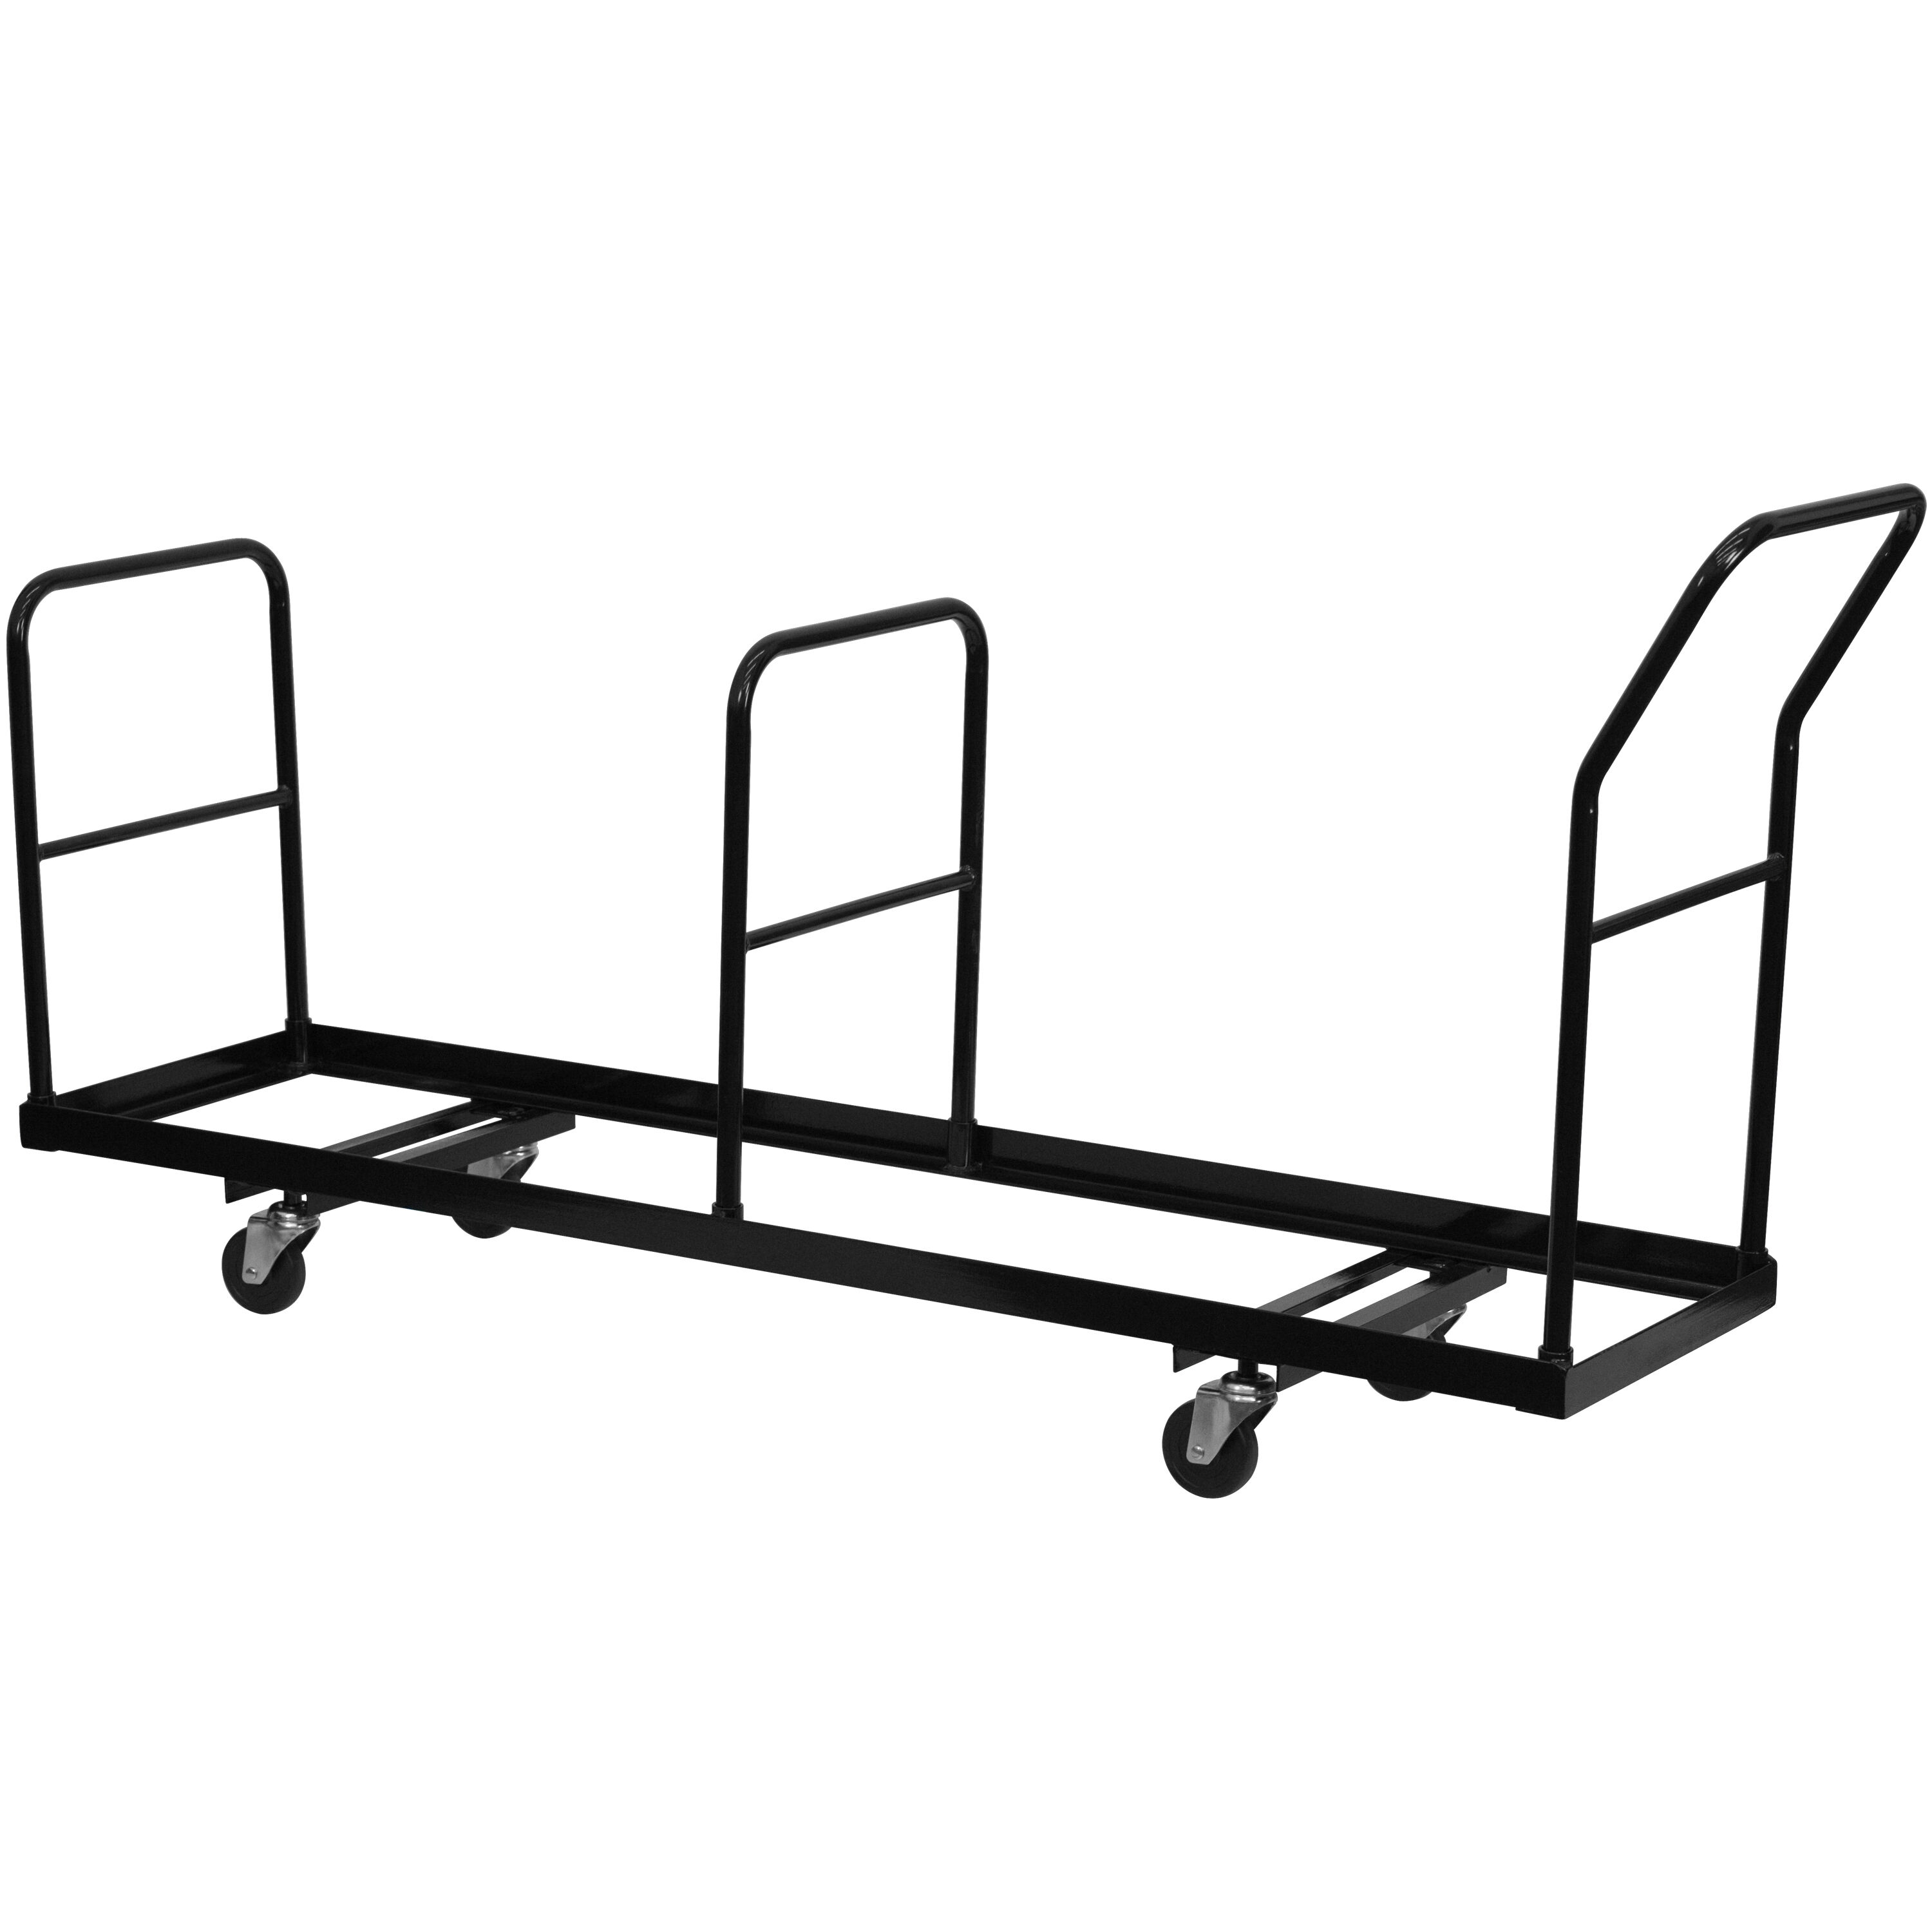 folding chair dolly 50 capacity office swivel chairs with arms foldingchairs4less dollies vertical storage 35